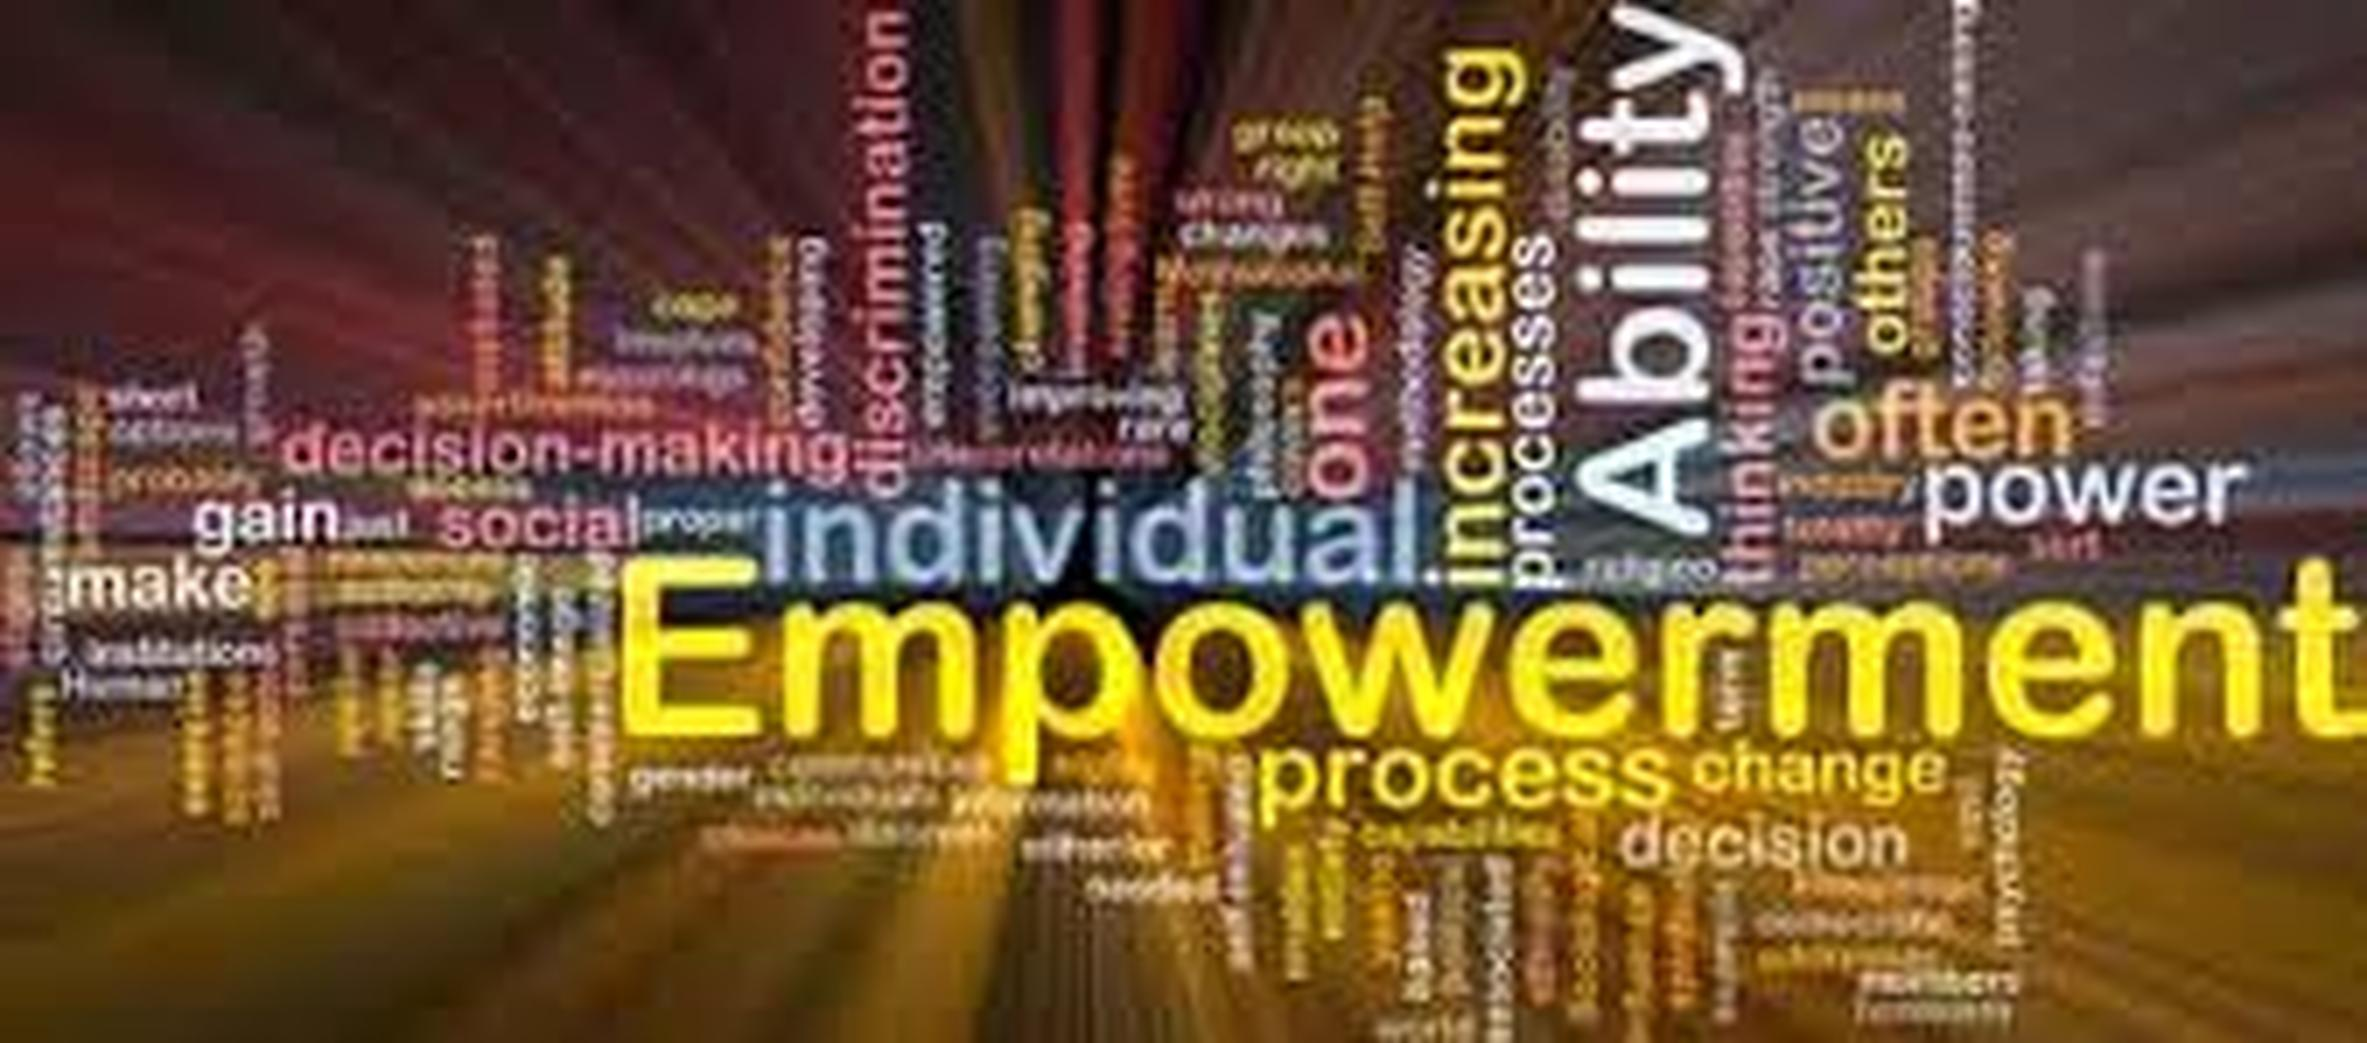 what does empowerment mean in social work